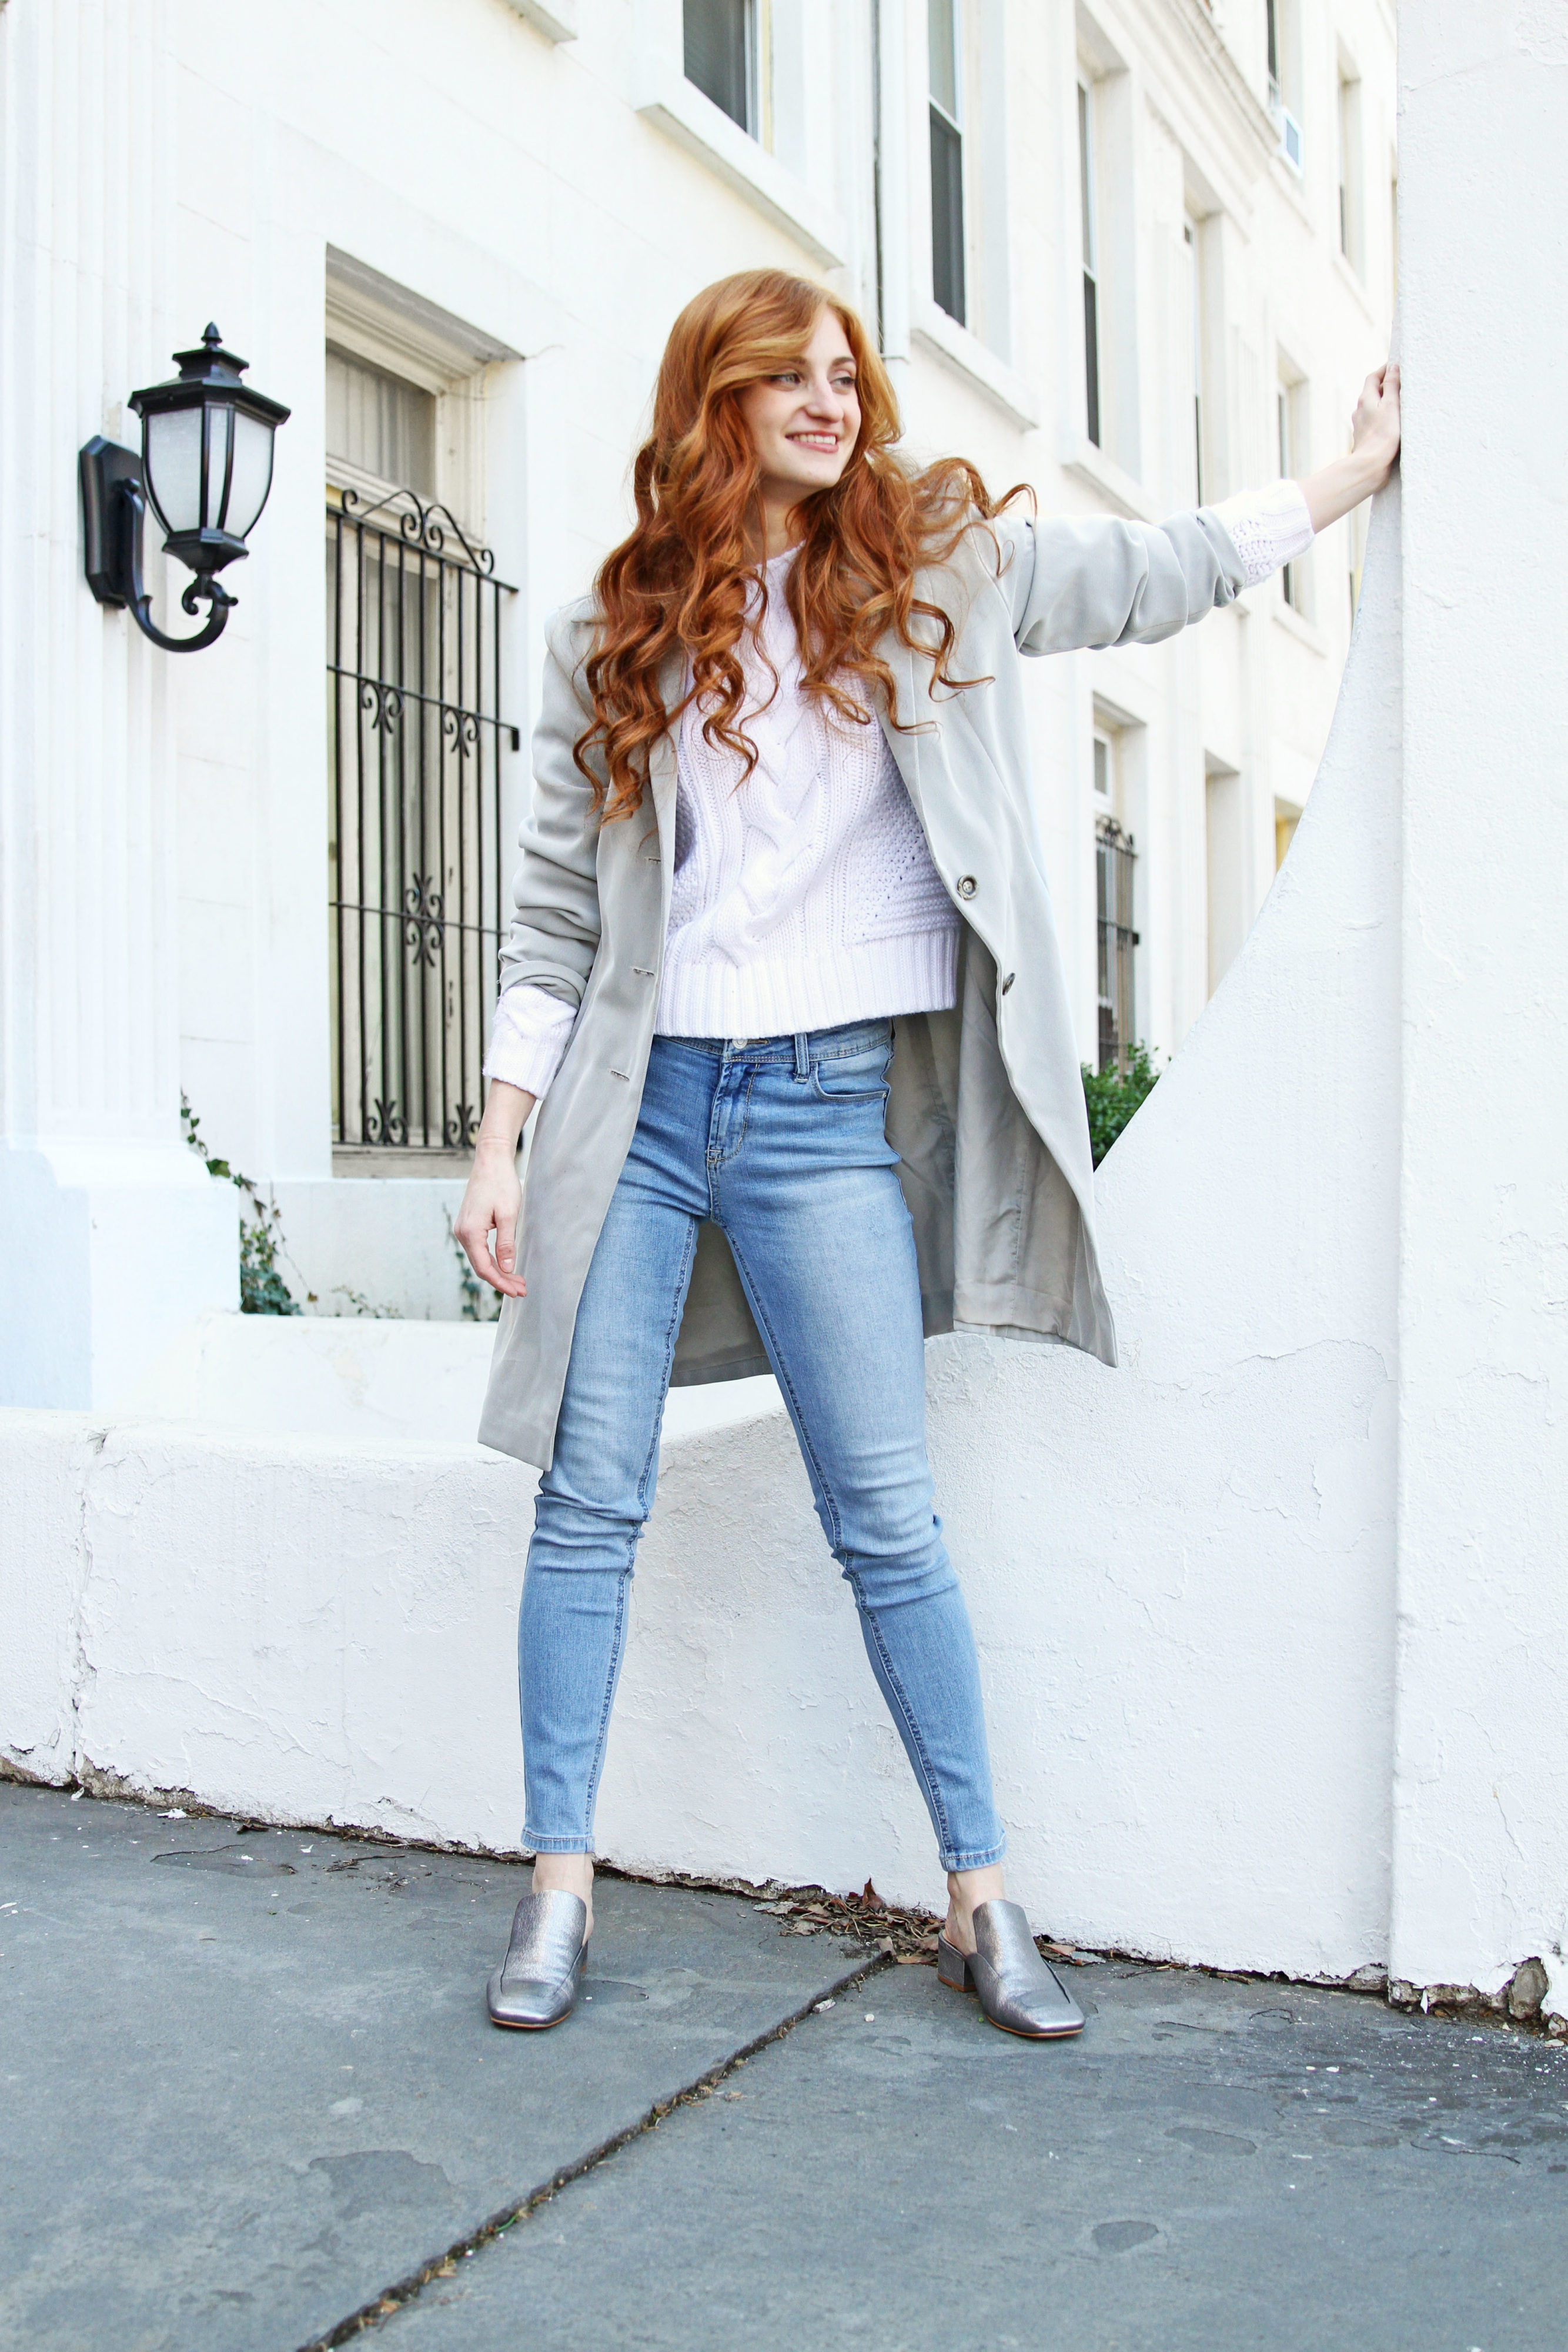 Erin Leigh Shes Red Haute Standing against white wall with sweater and jeans